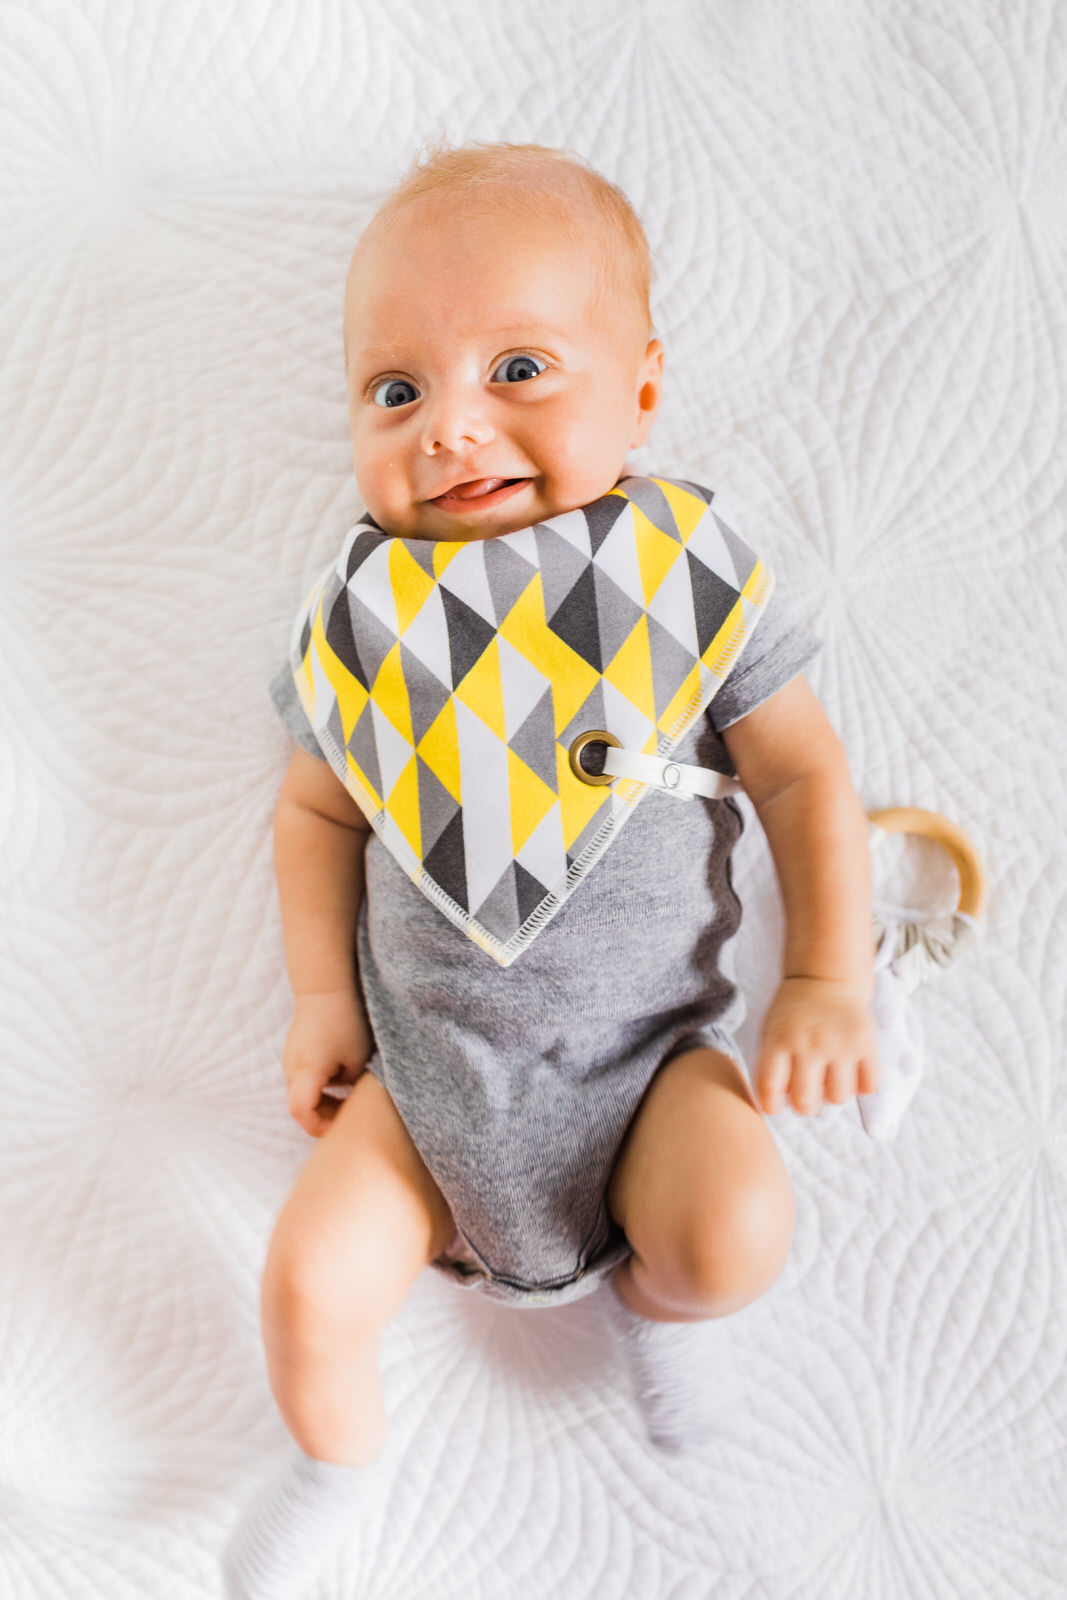 kids-clothes-small-business-baby-newborn-collaboration-7613.jpg